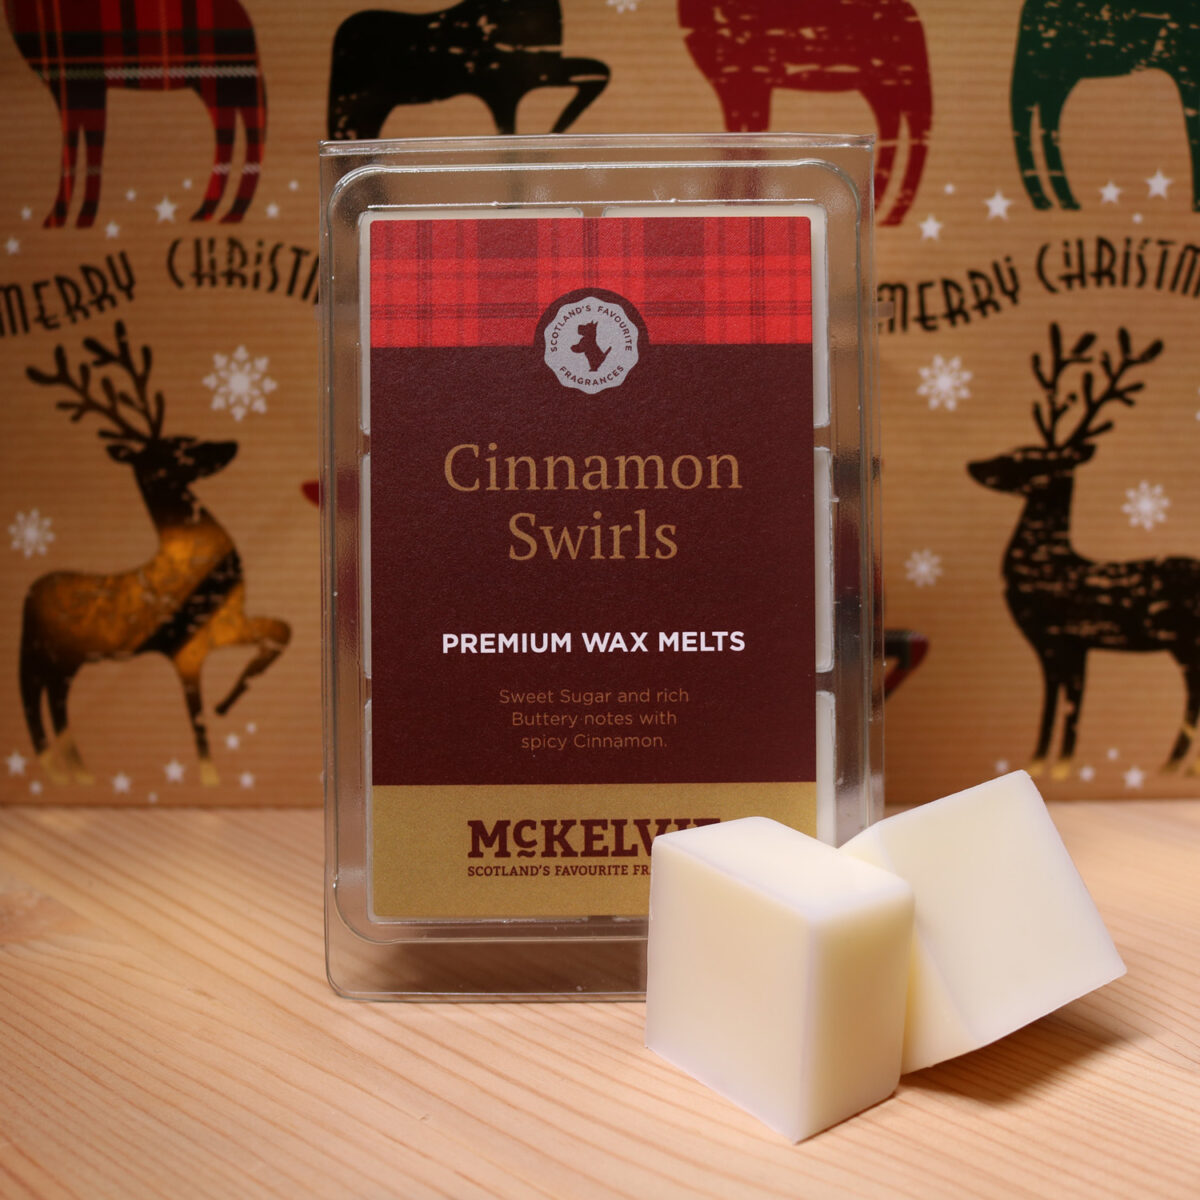 Cinnamon Swirls Wax Melts